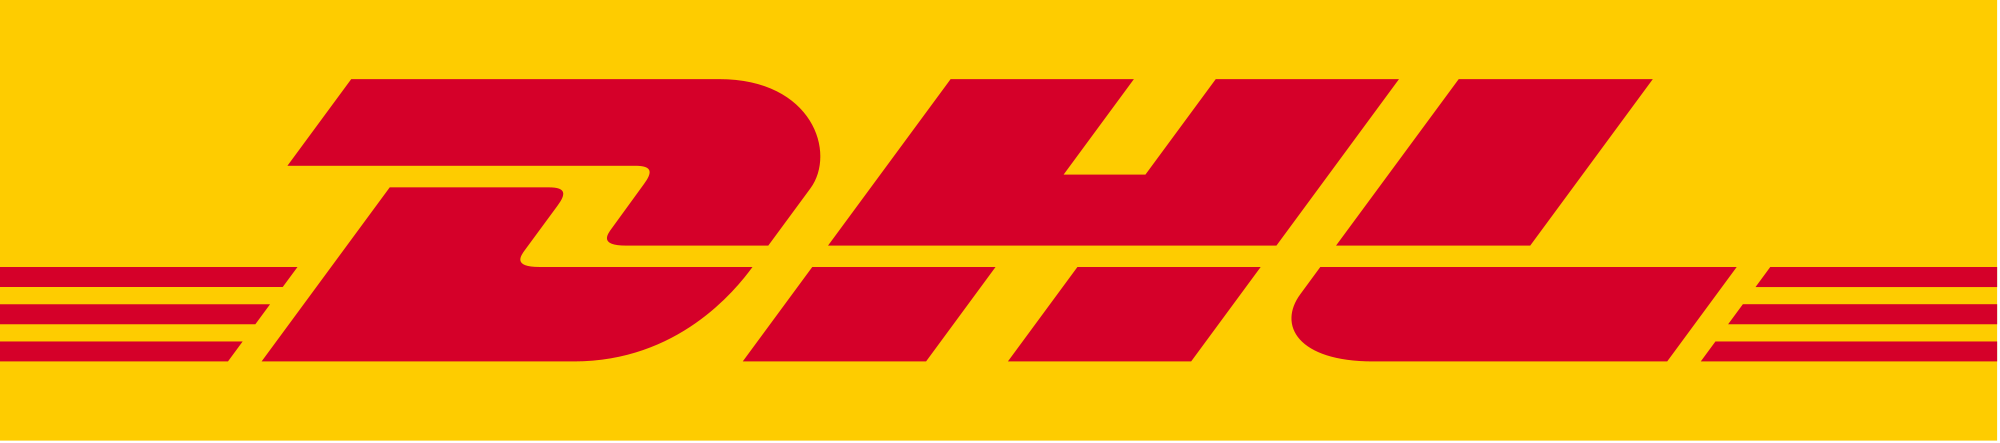 Internationaler Versand mit DHL